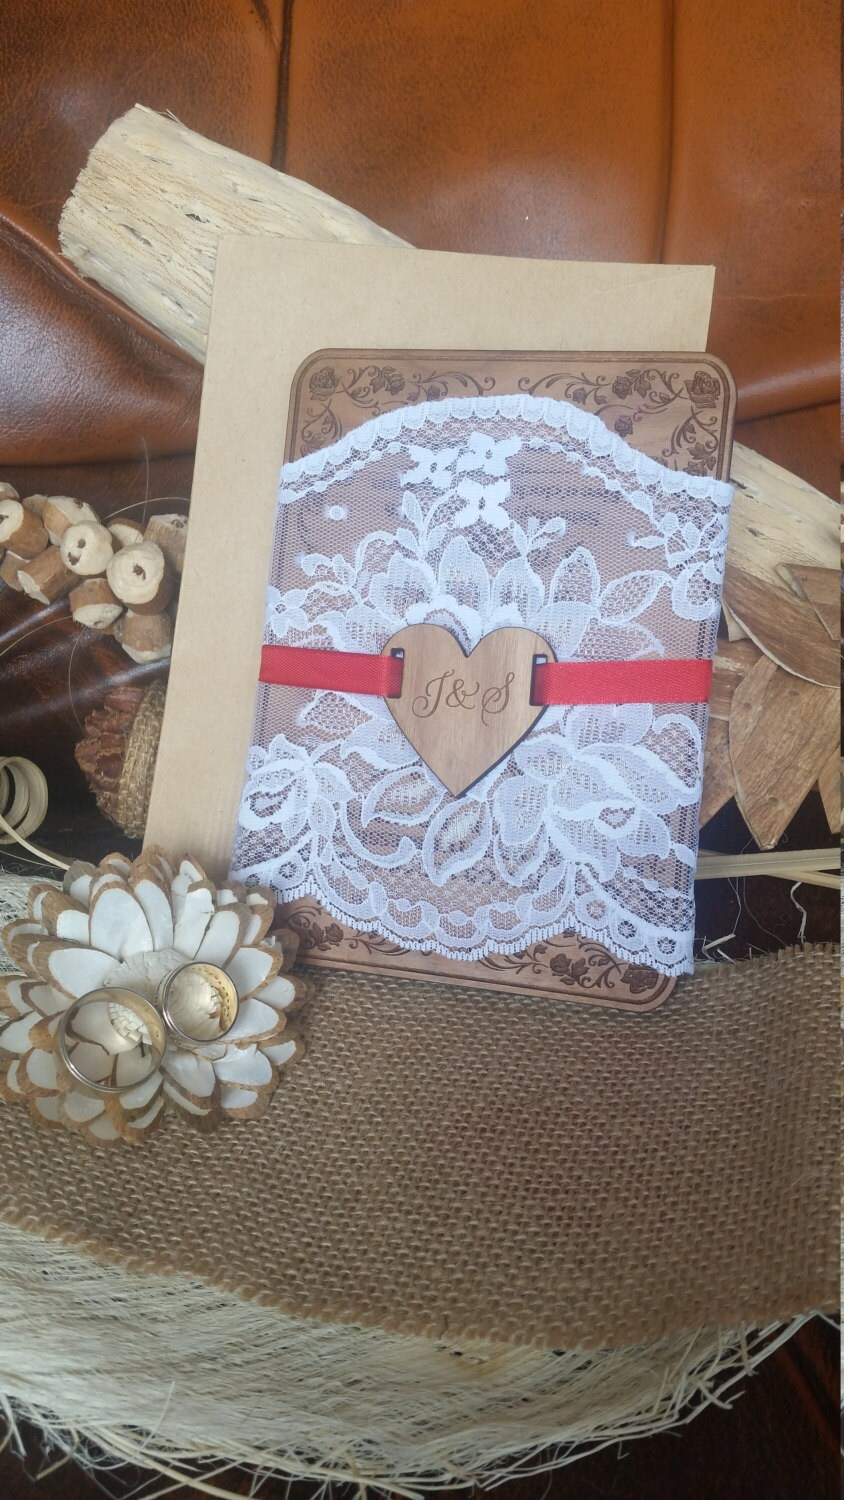 Shabby Chic Wedding Invitations Covered With White Lace, Heart Engraved Initials & Red Bow. Polished Wooden